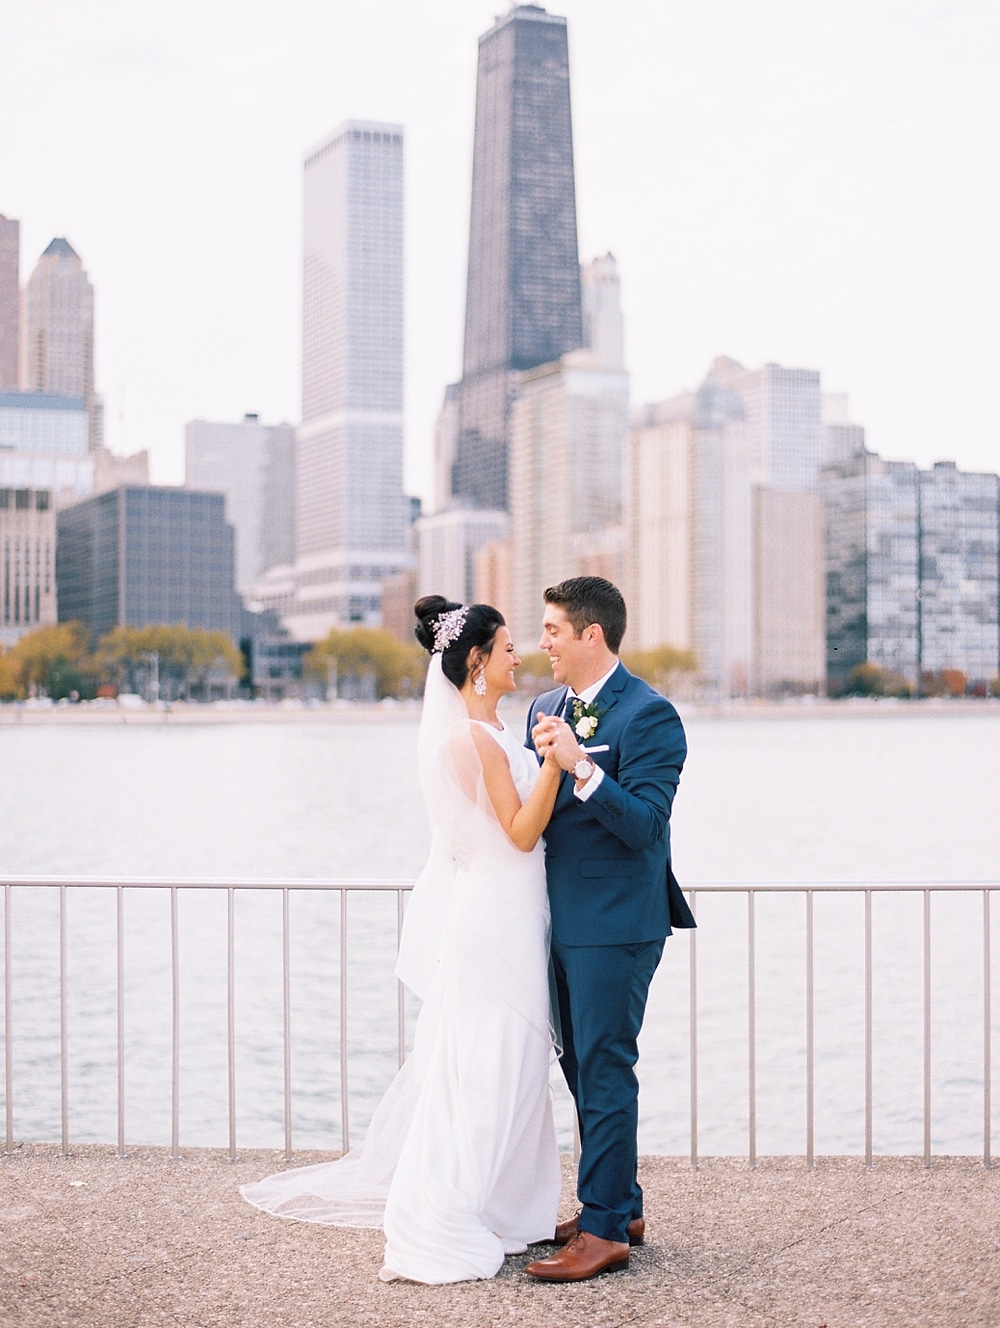 Kristin-La-Voie-Photography-chicago-wedding-photographer-15